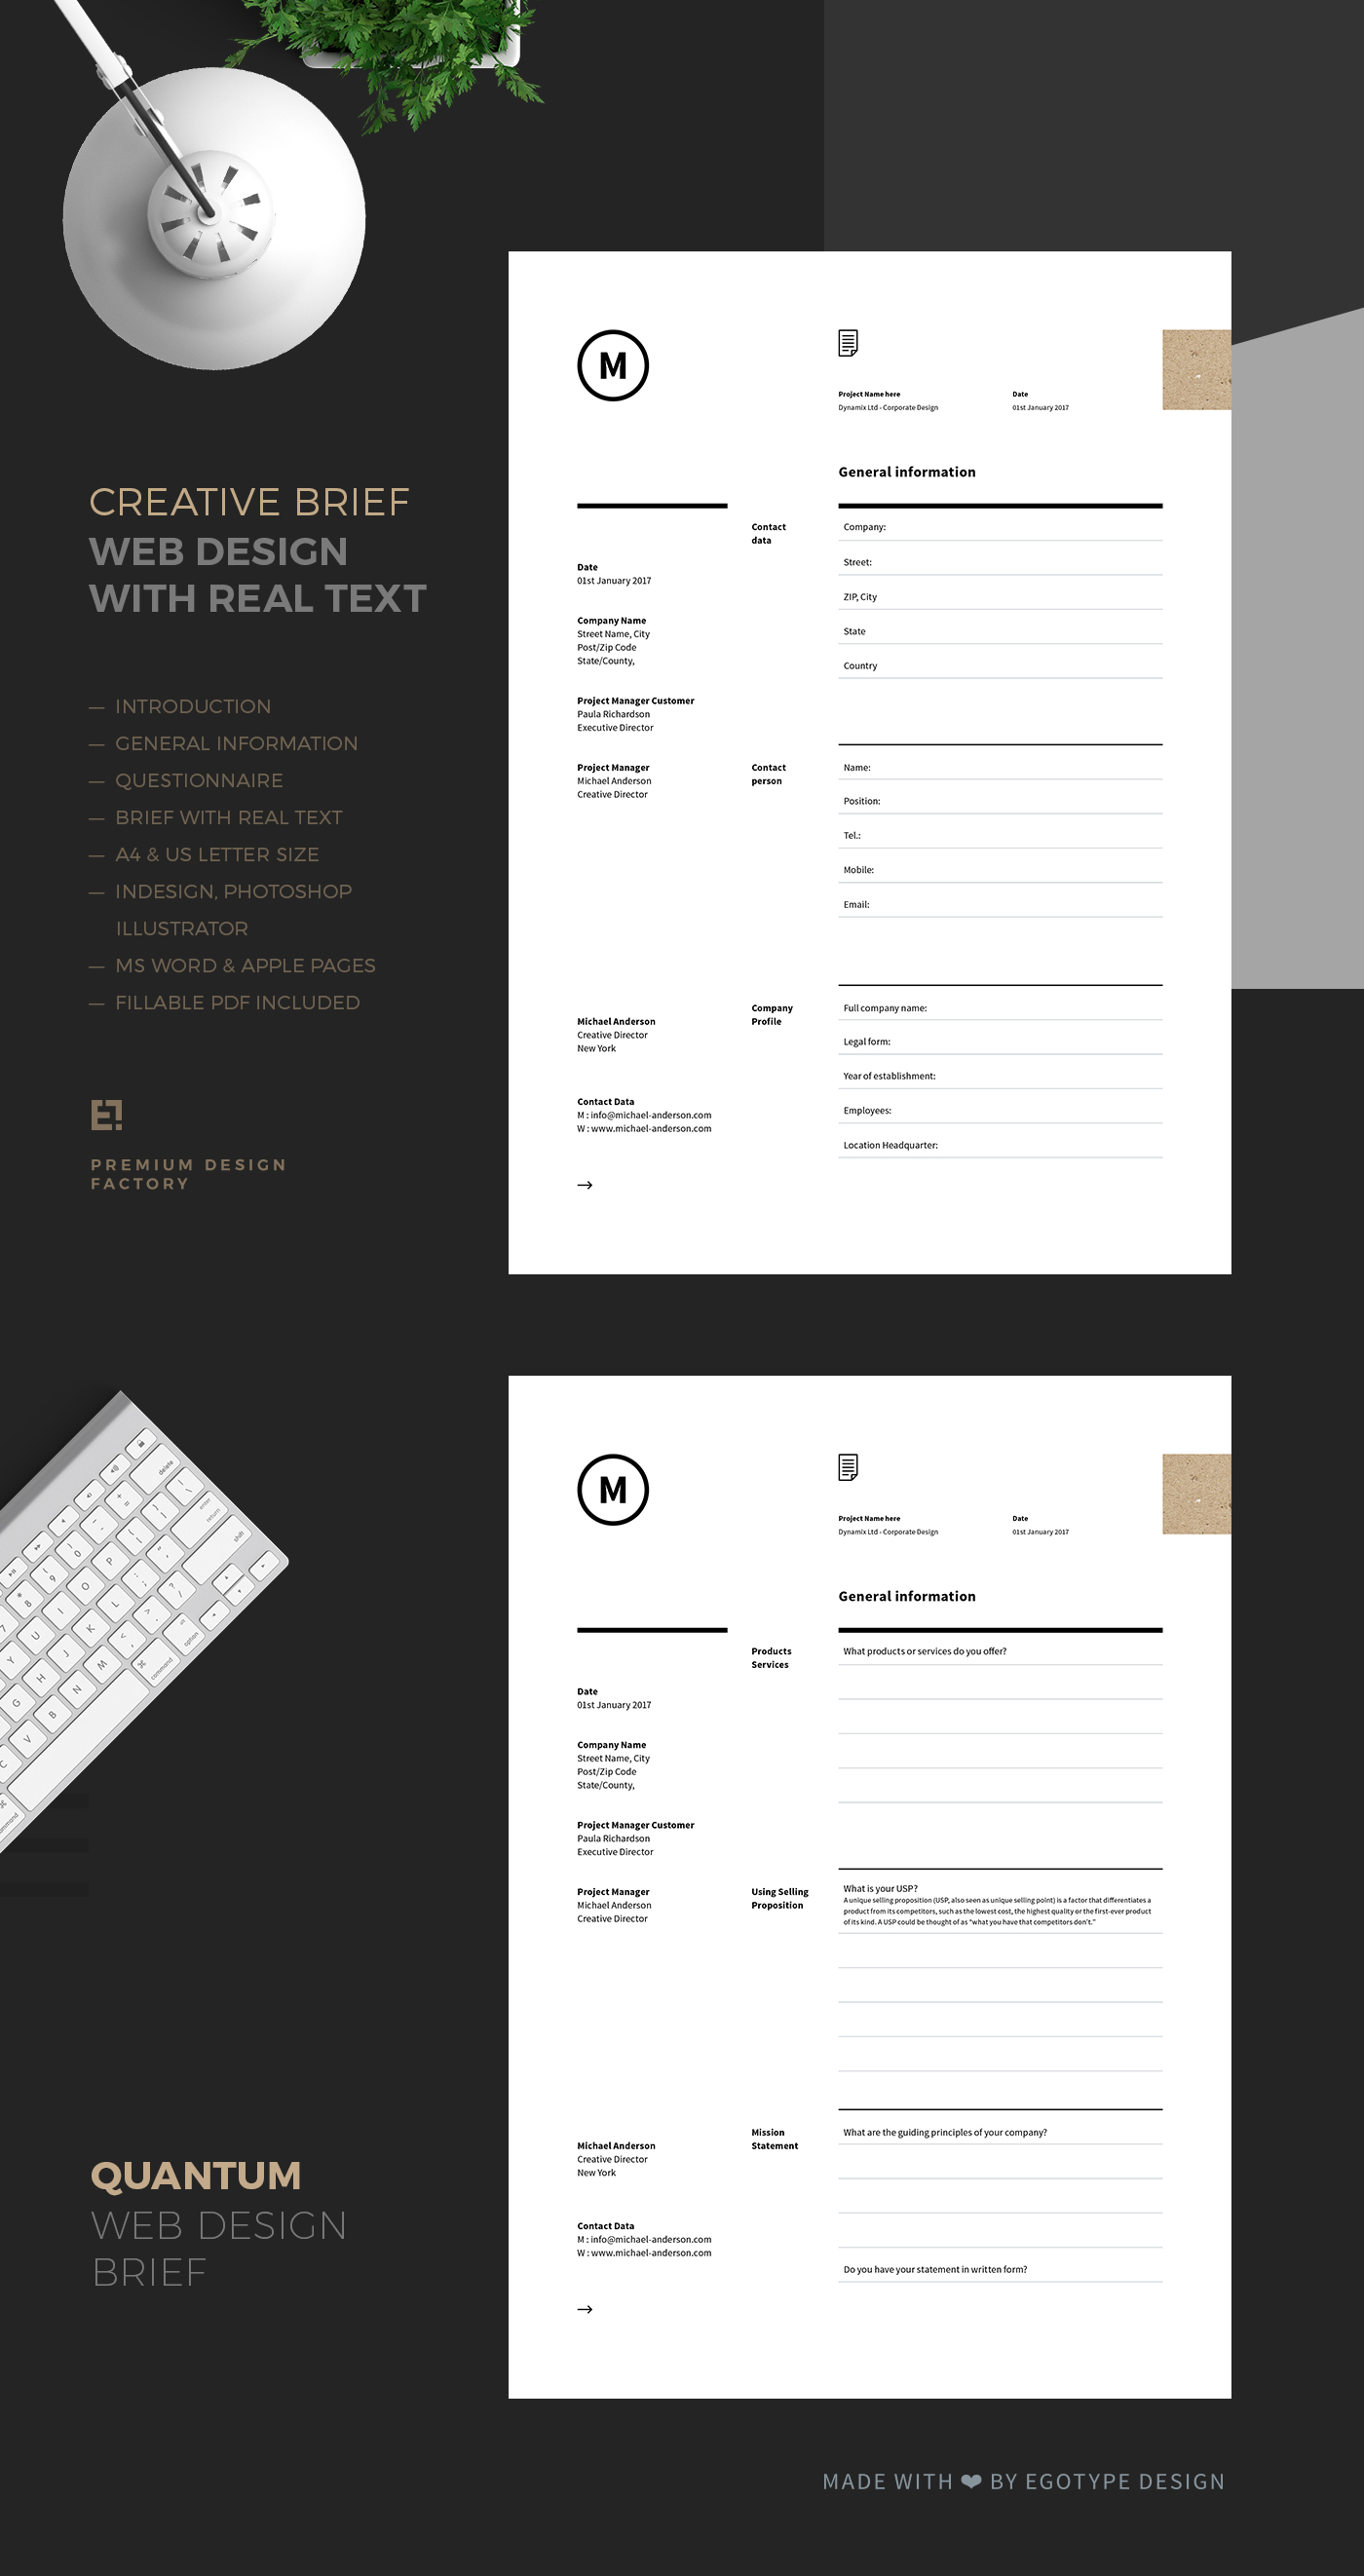 Brief Documents for Web Design on Behance